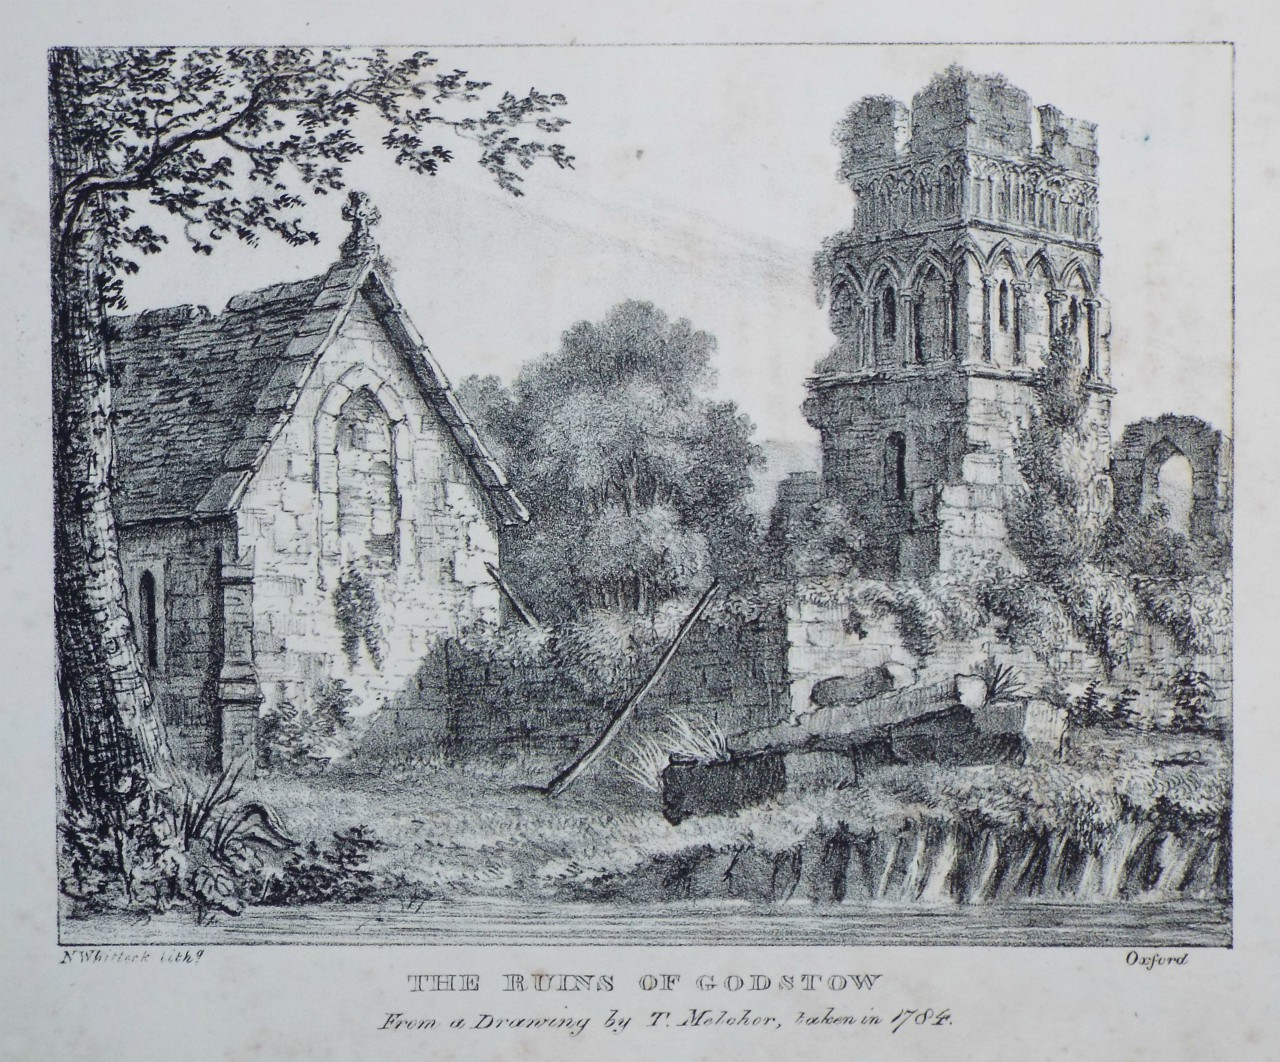 Lithograph - The Ruins of Godstow From a Drawing by T. Melcher, taken in 1784. - Whittock